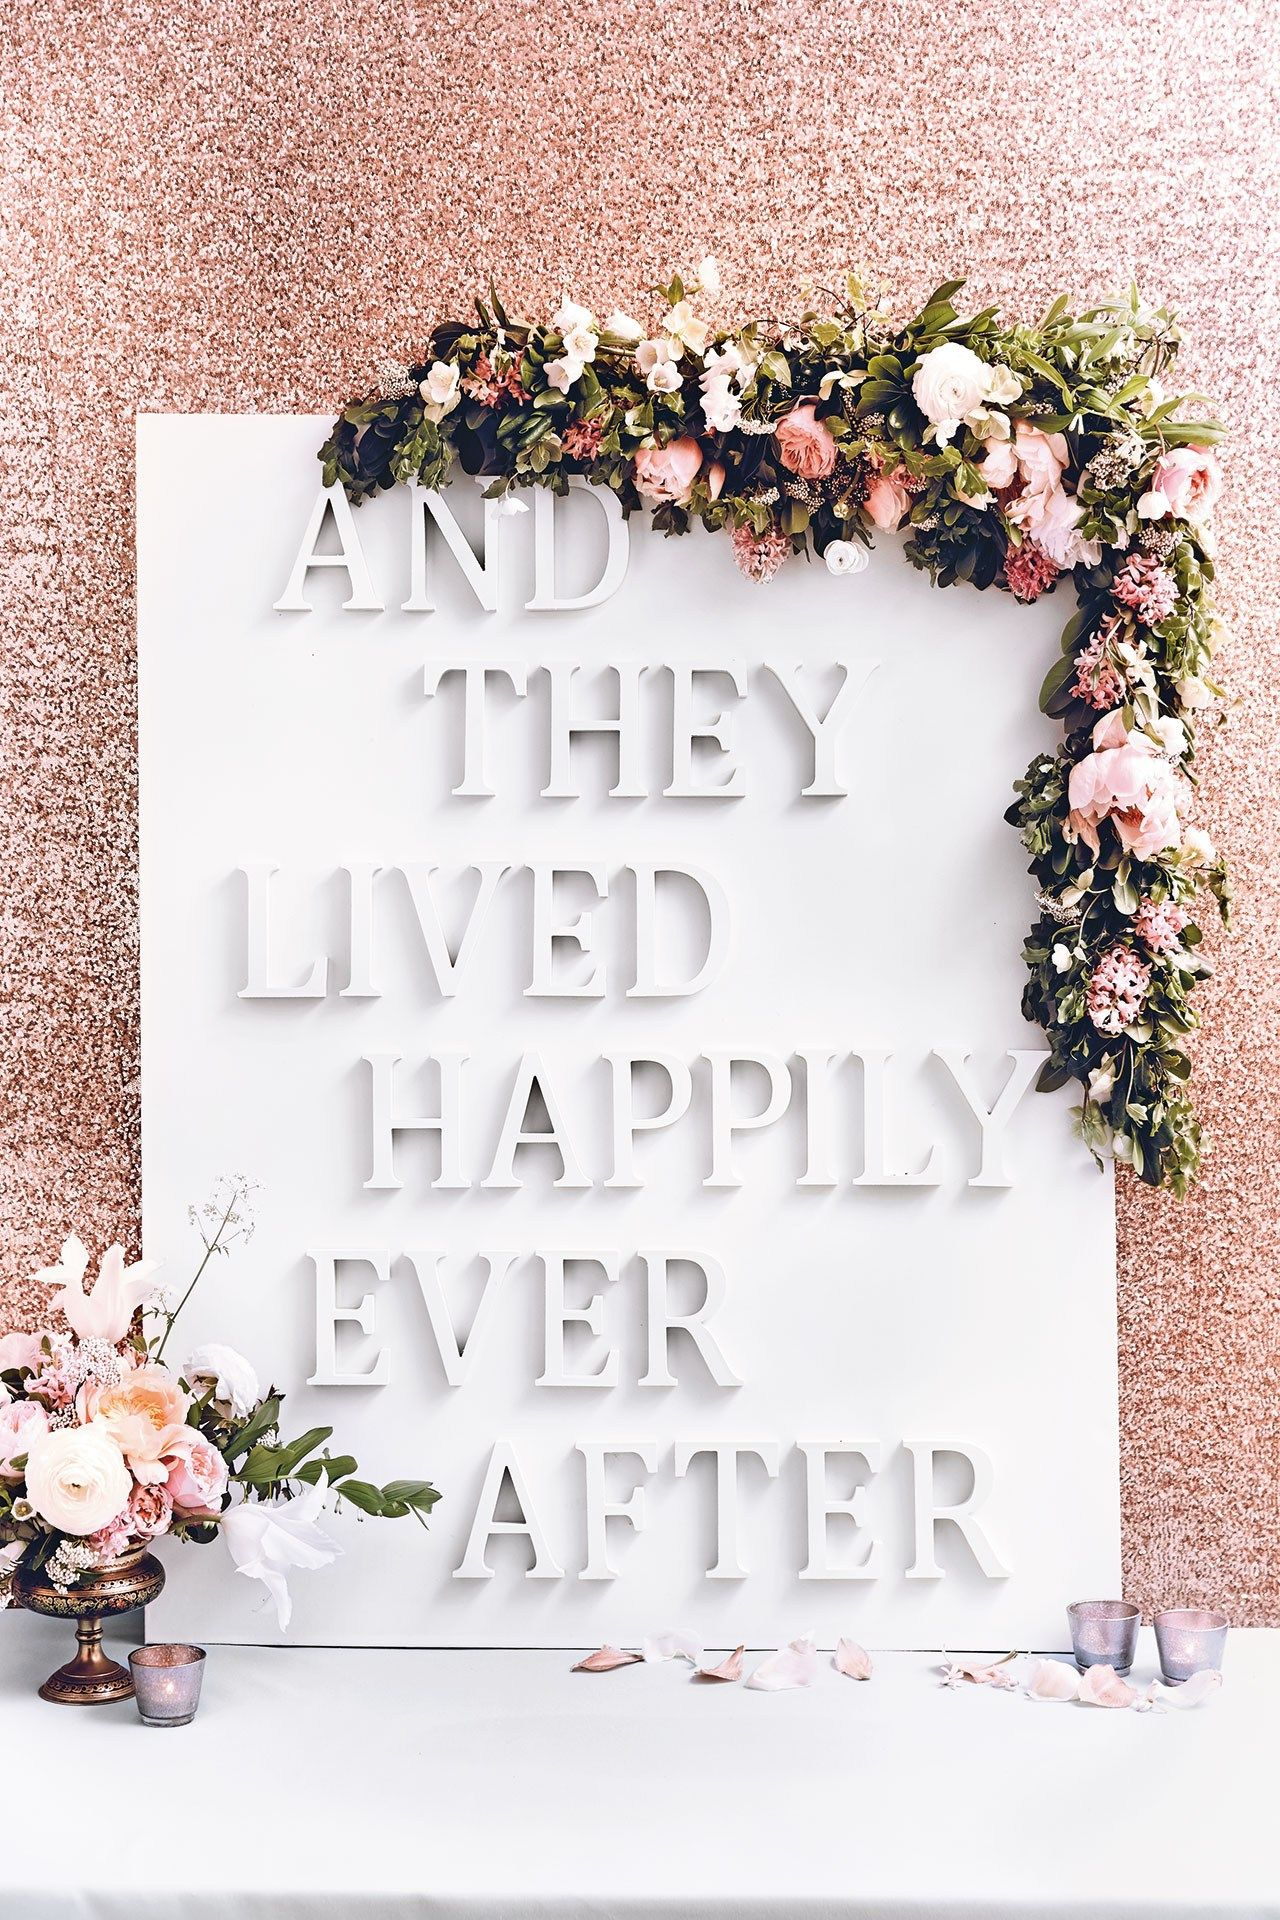 Wedding decorations at home  DIY Wedding Reception Sign Photo Backdrop BridesMagazine